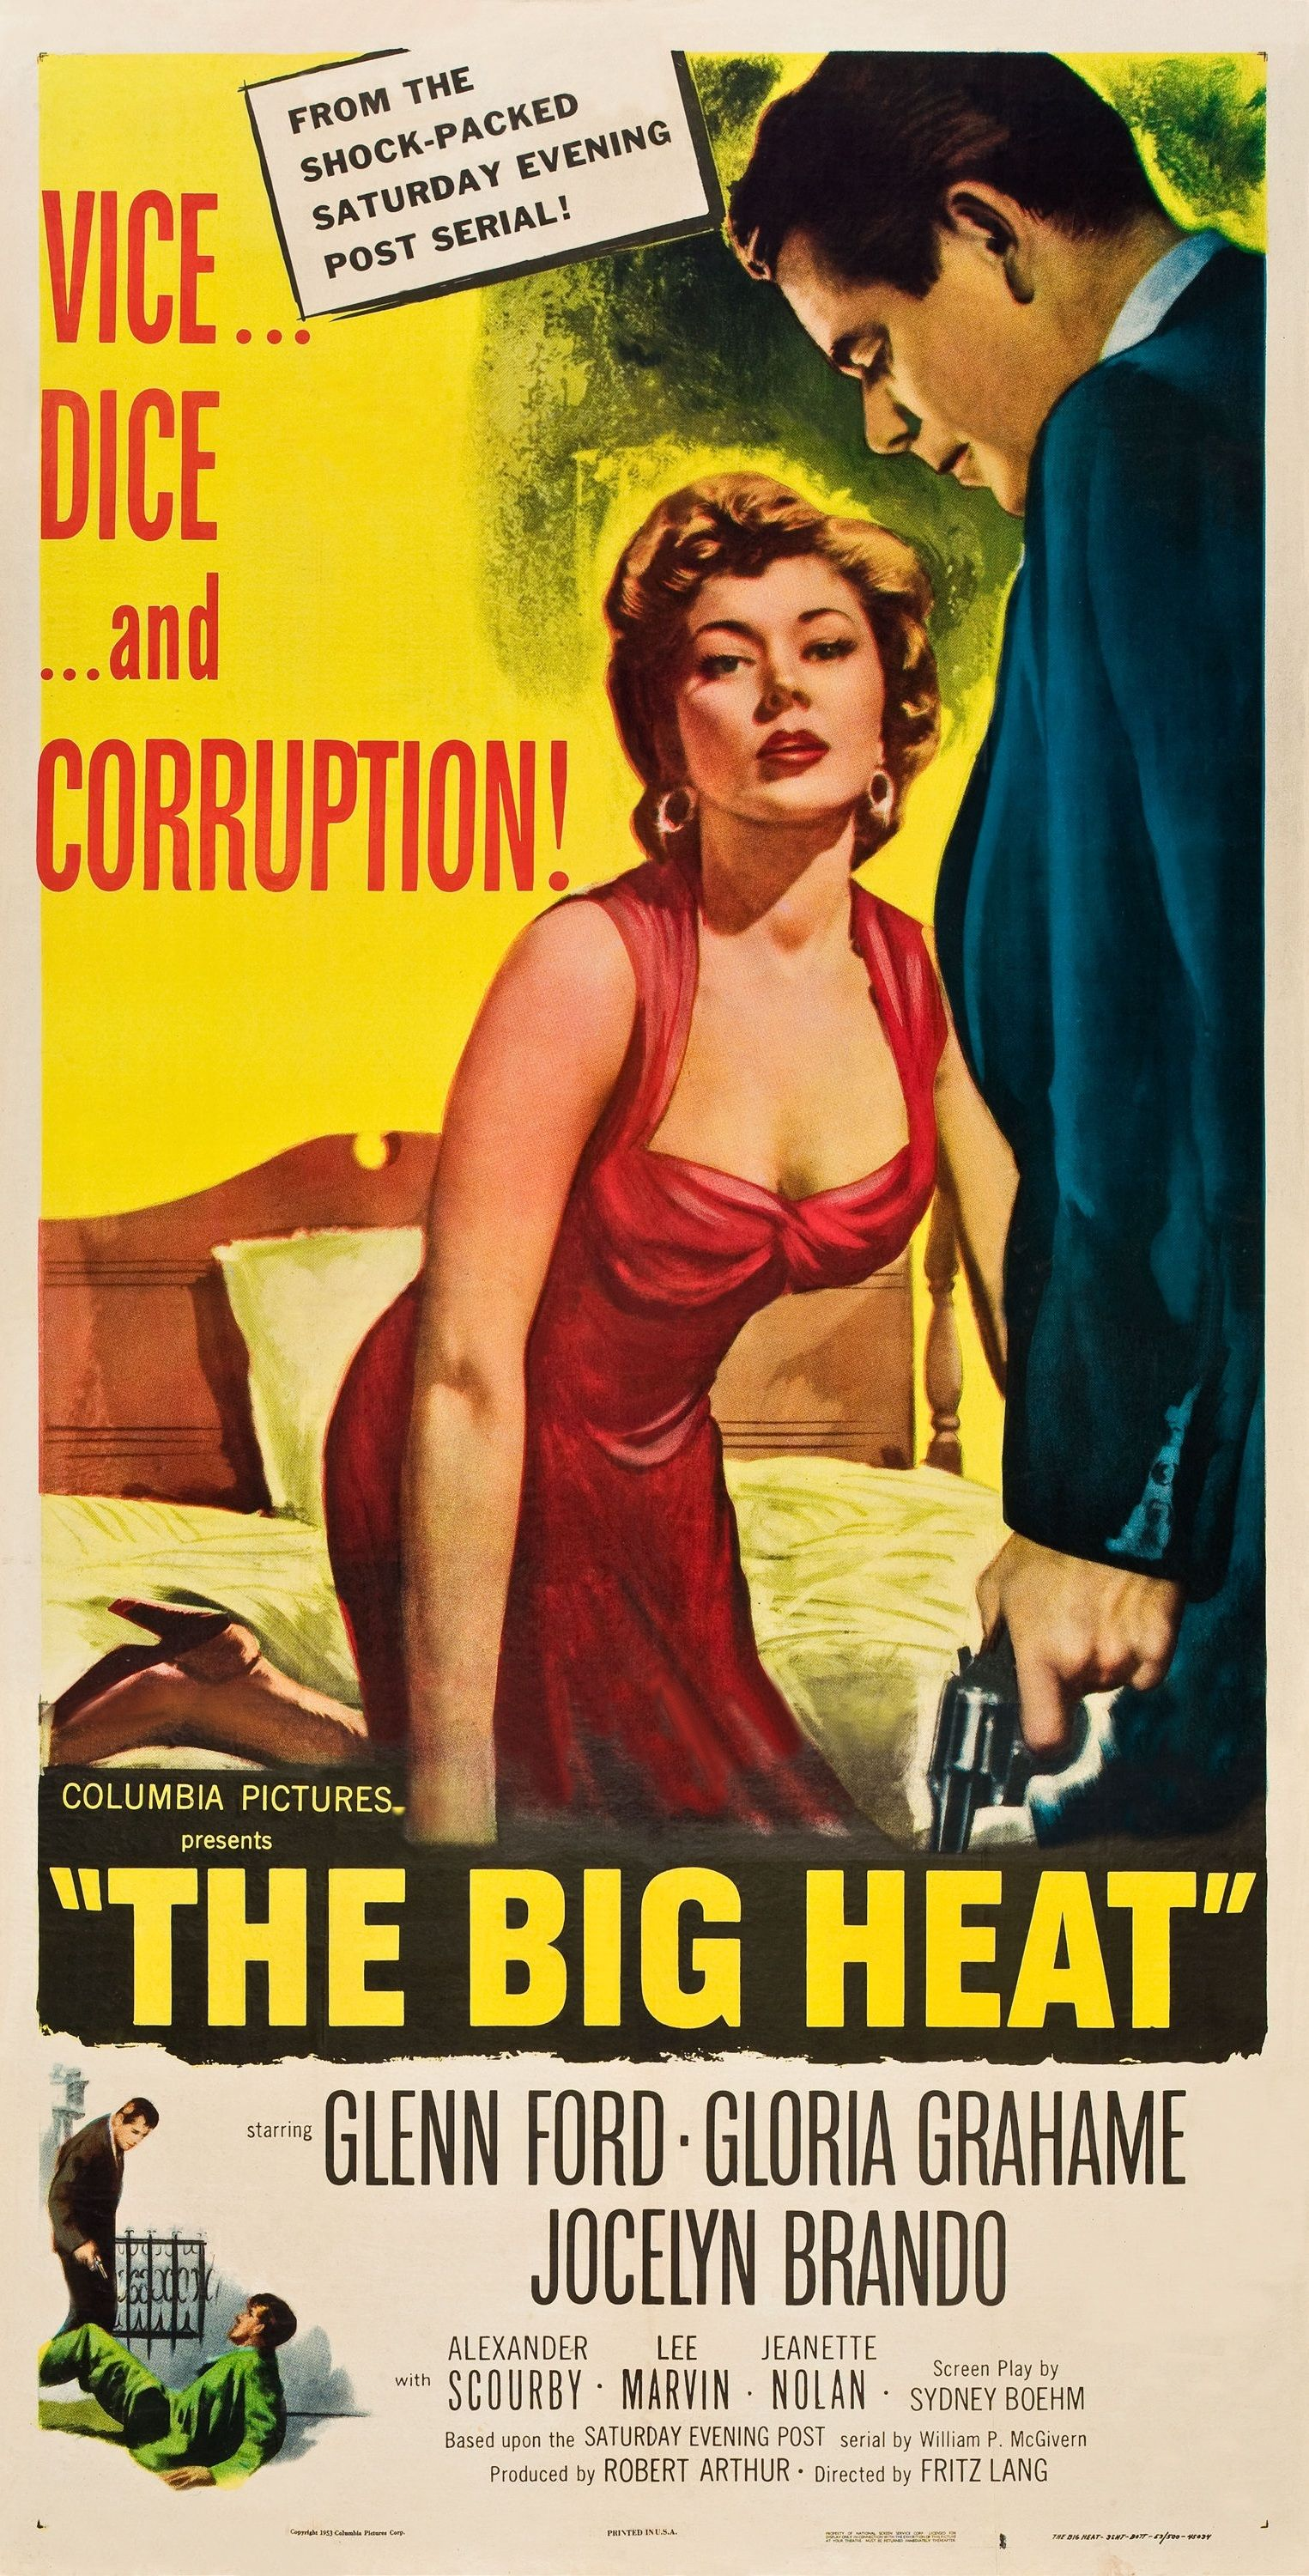 The Big Heat (1953). Dir. Fritz Lang. Glenn Ford, Gloria Grahame, Lee Marvin, Joyce Brando (yes, Marlon's sister). Marvin steals the show as a swaggering goon with a hair-trigger temper.